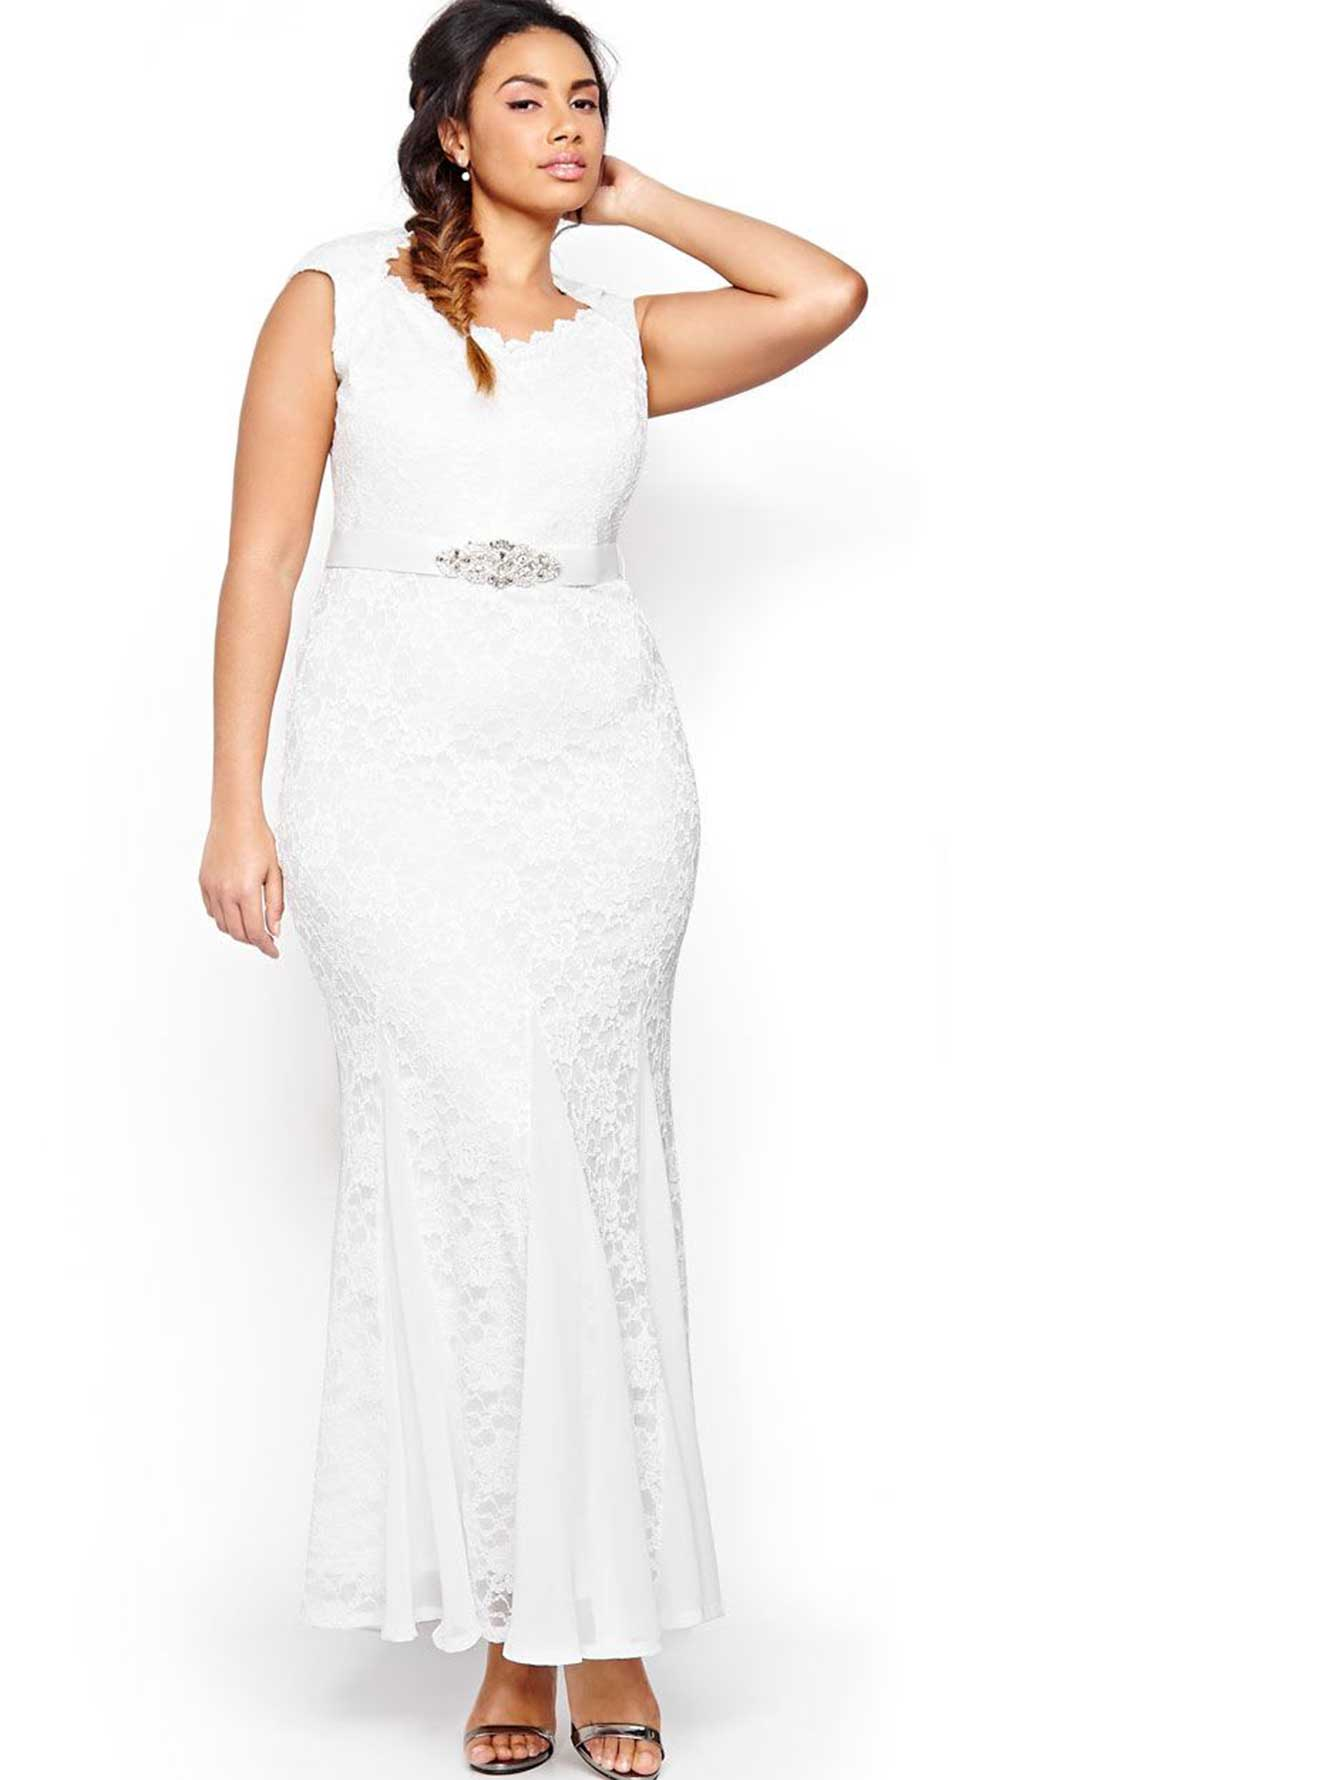 Lace Wedding Dress with Sweetheart Neckline  Addition Elle